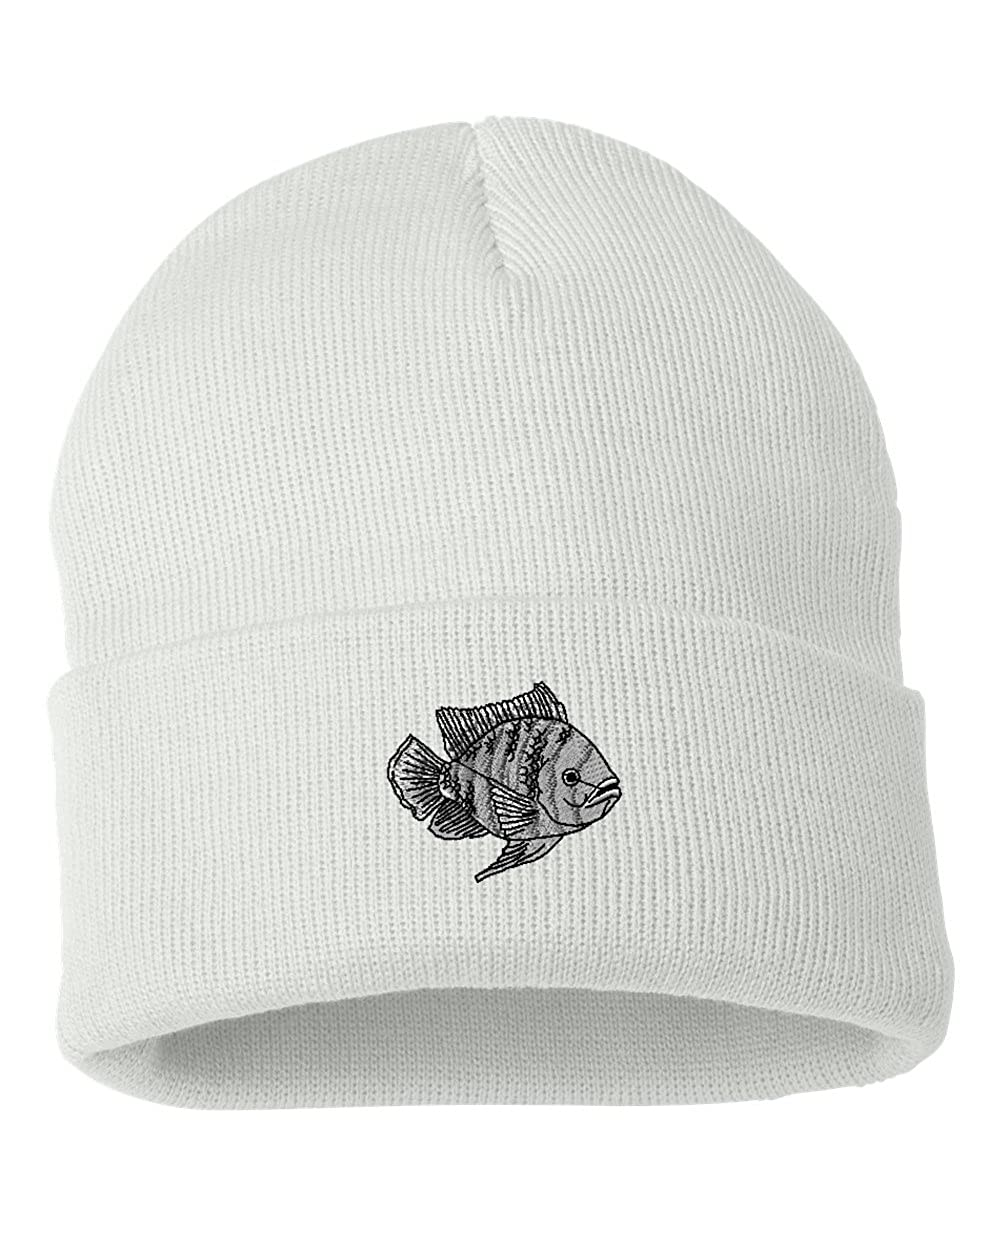 Tilapia Custom Personalized Embroidery Embroidered Beanie